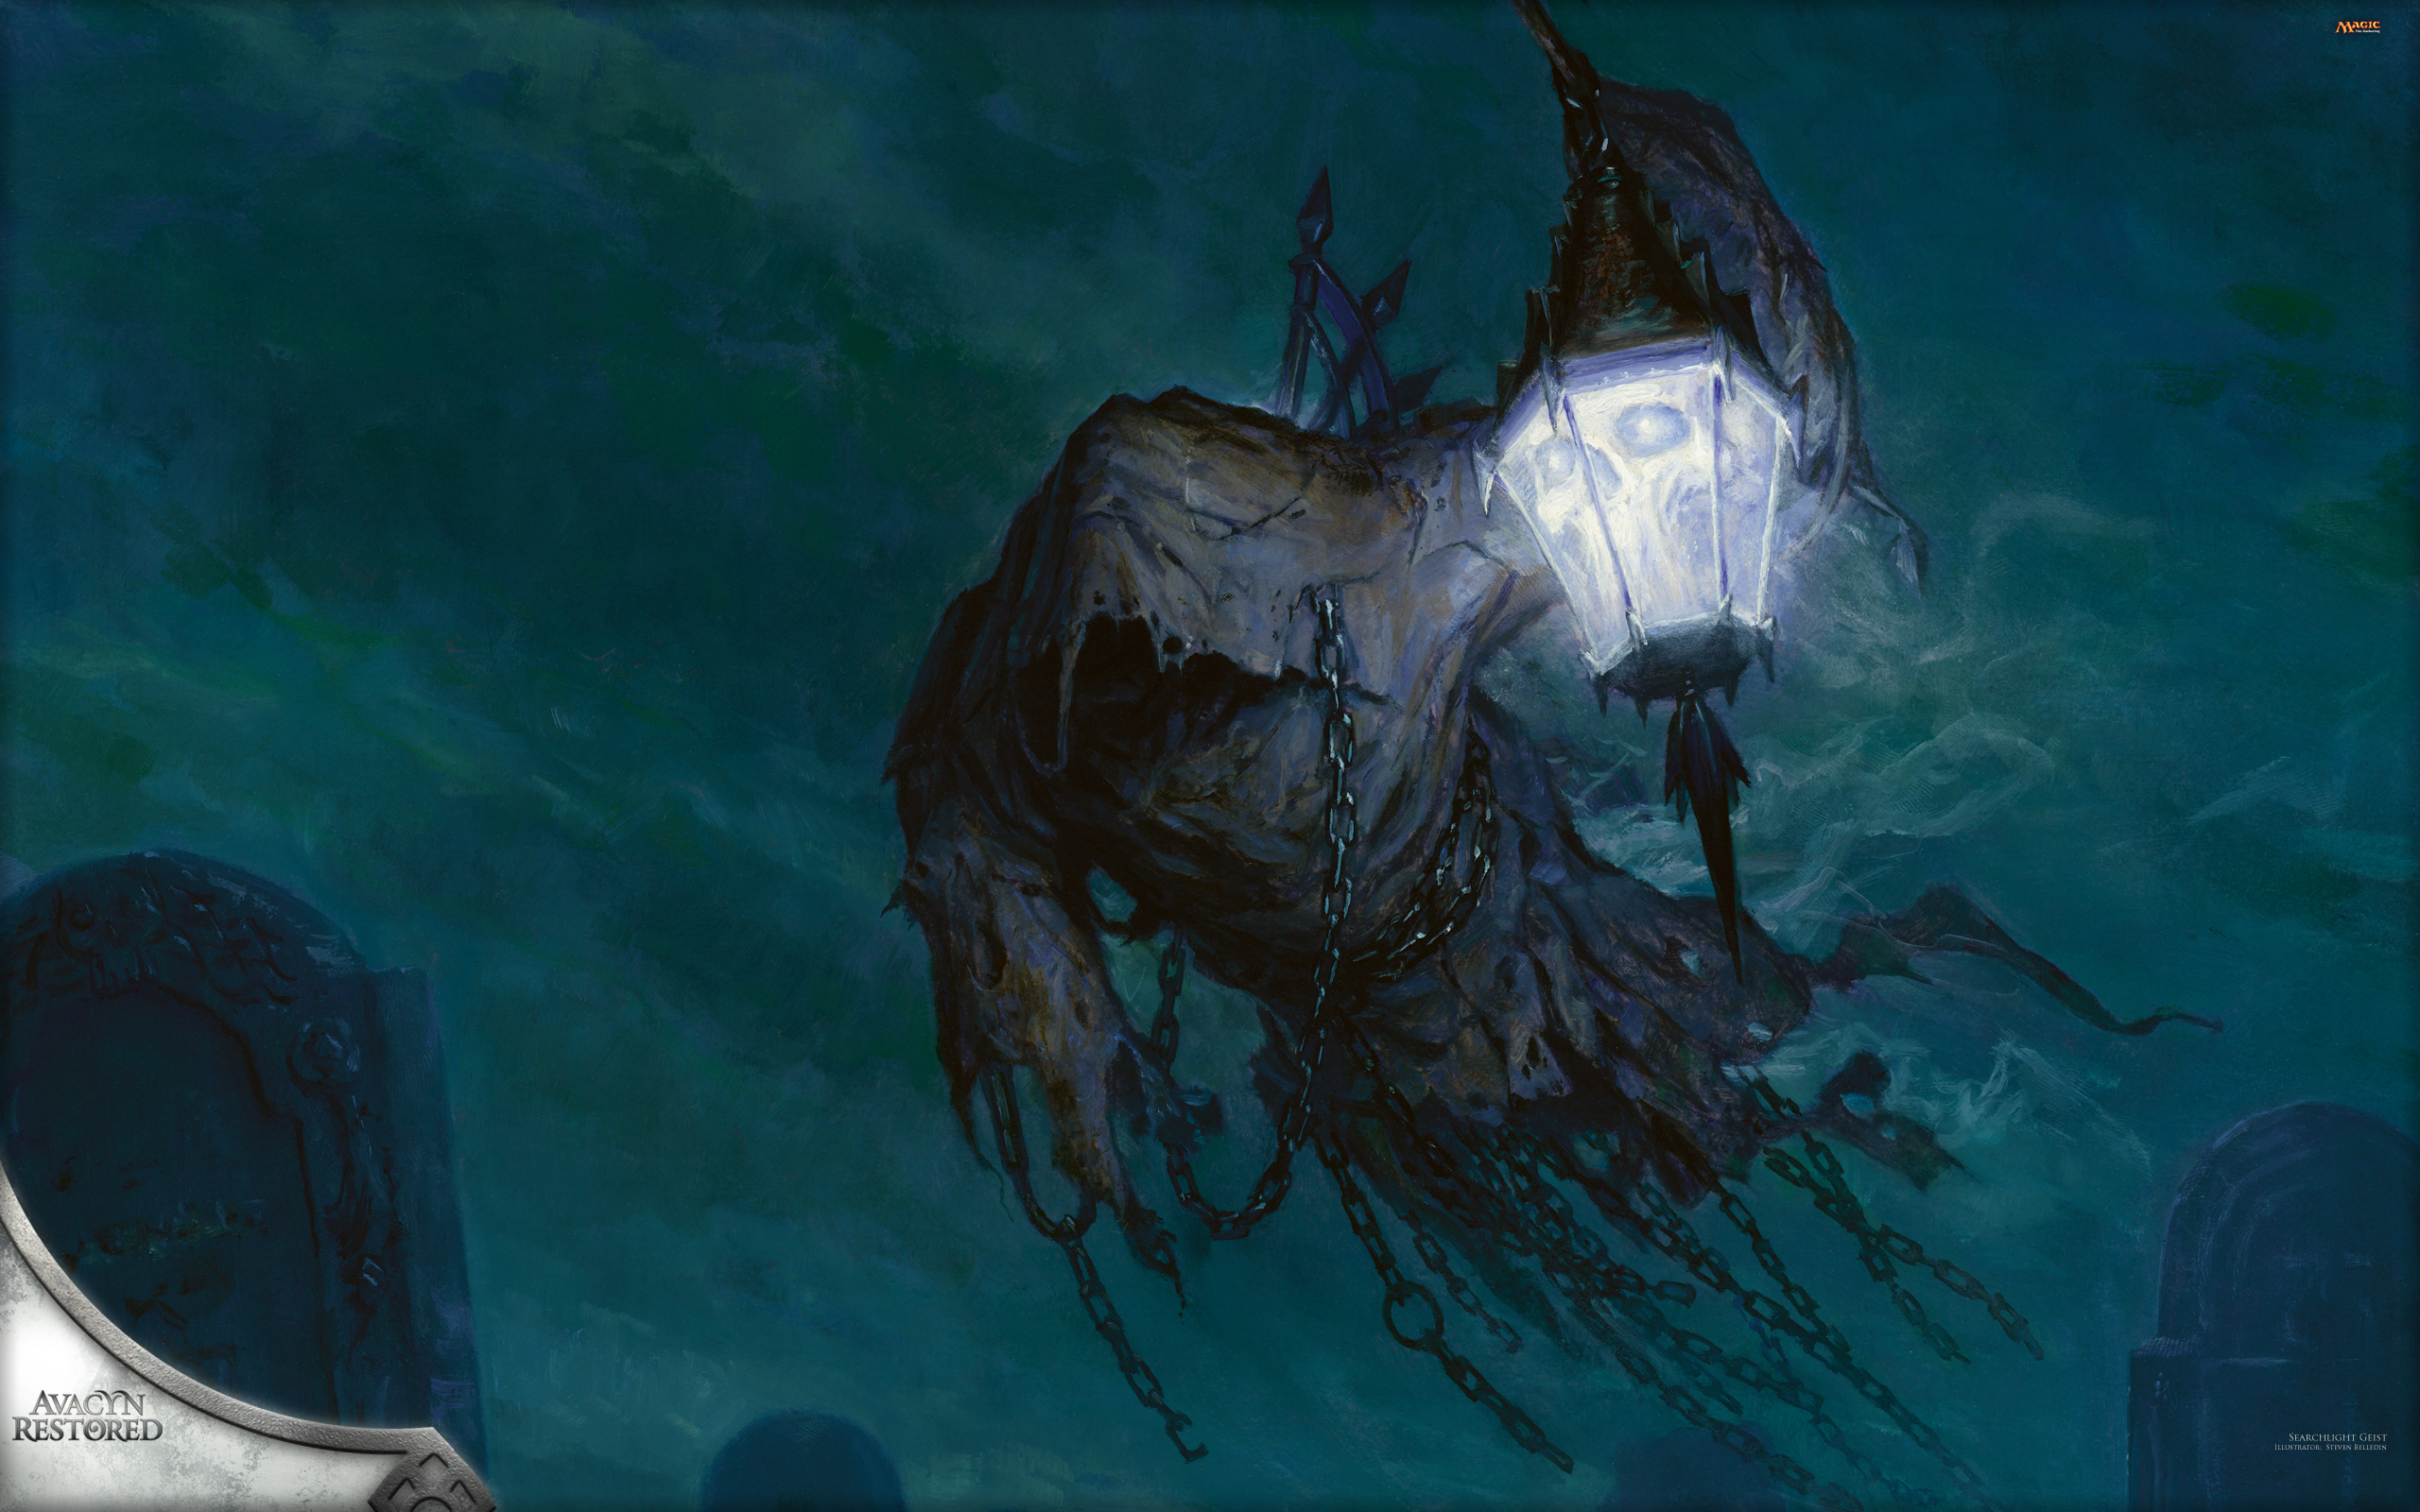 Wallpapers magic the gathering coming 4252012 voltagebd Image collections